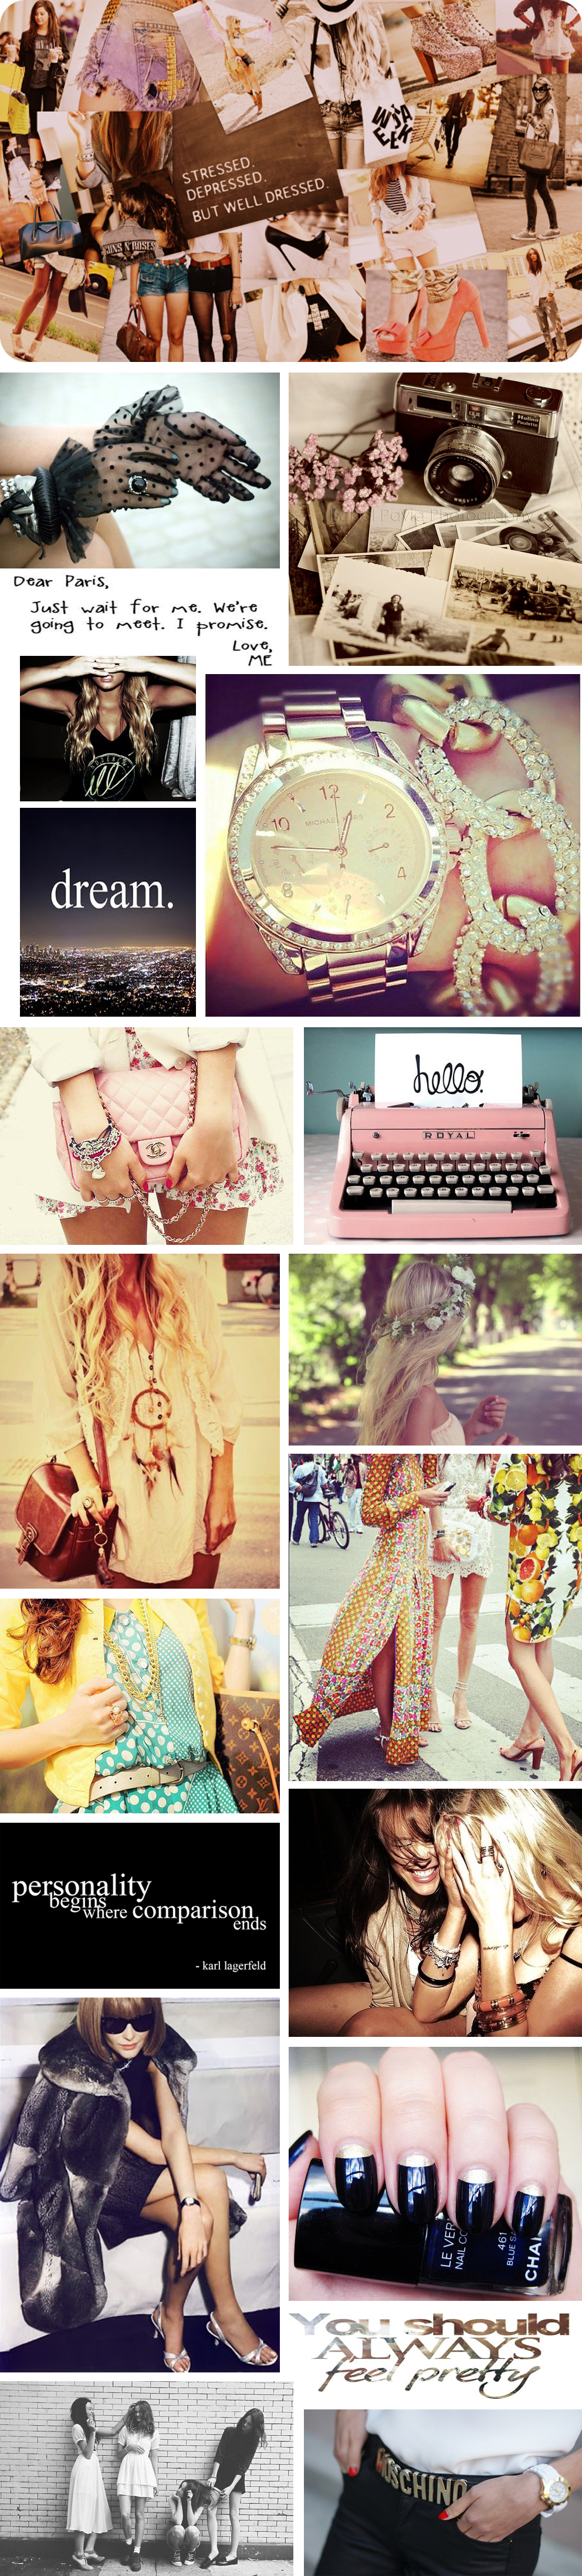 inspoothues20